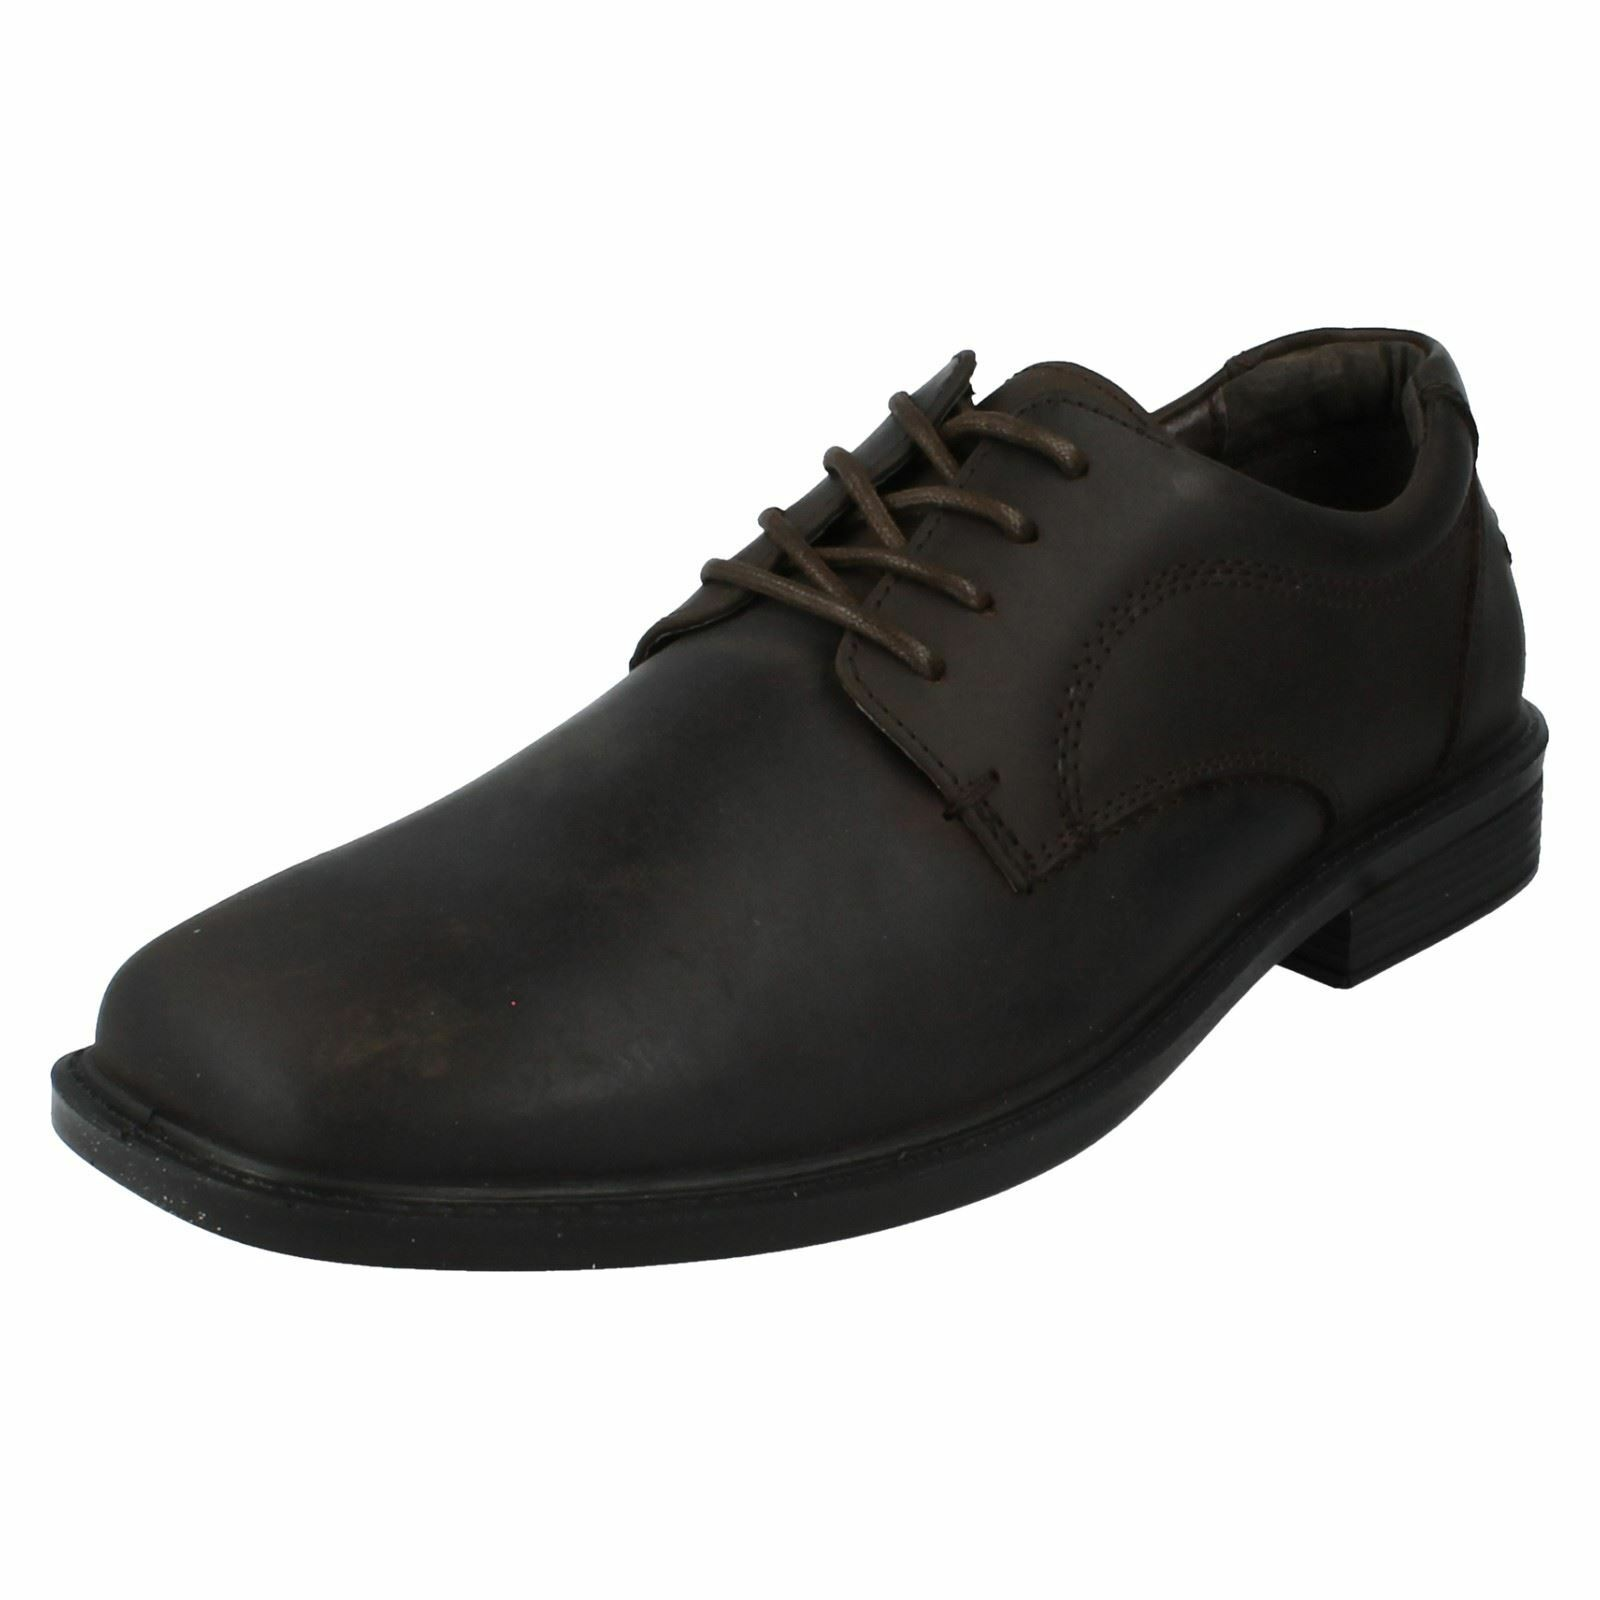 MENS HUSH PUPPIES NORWICH HP LACE UP FORMAL LEATHER BROWN SHOES SIZE 6-11